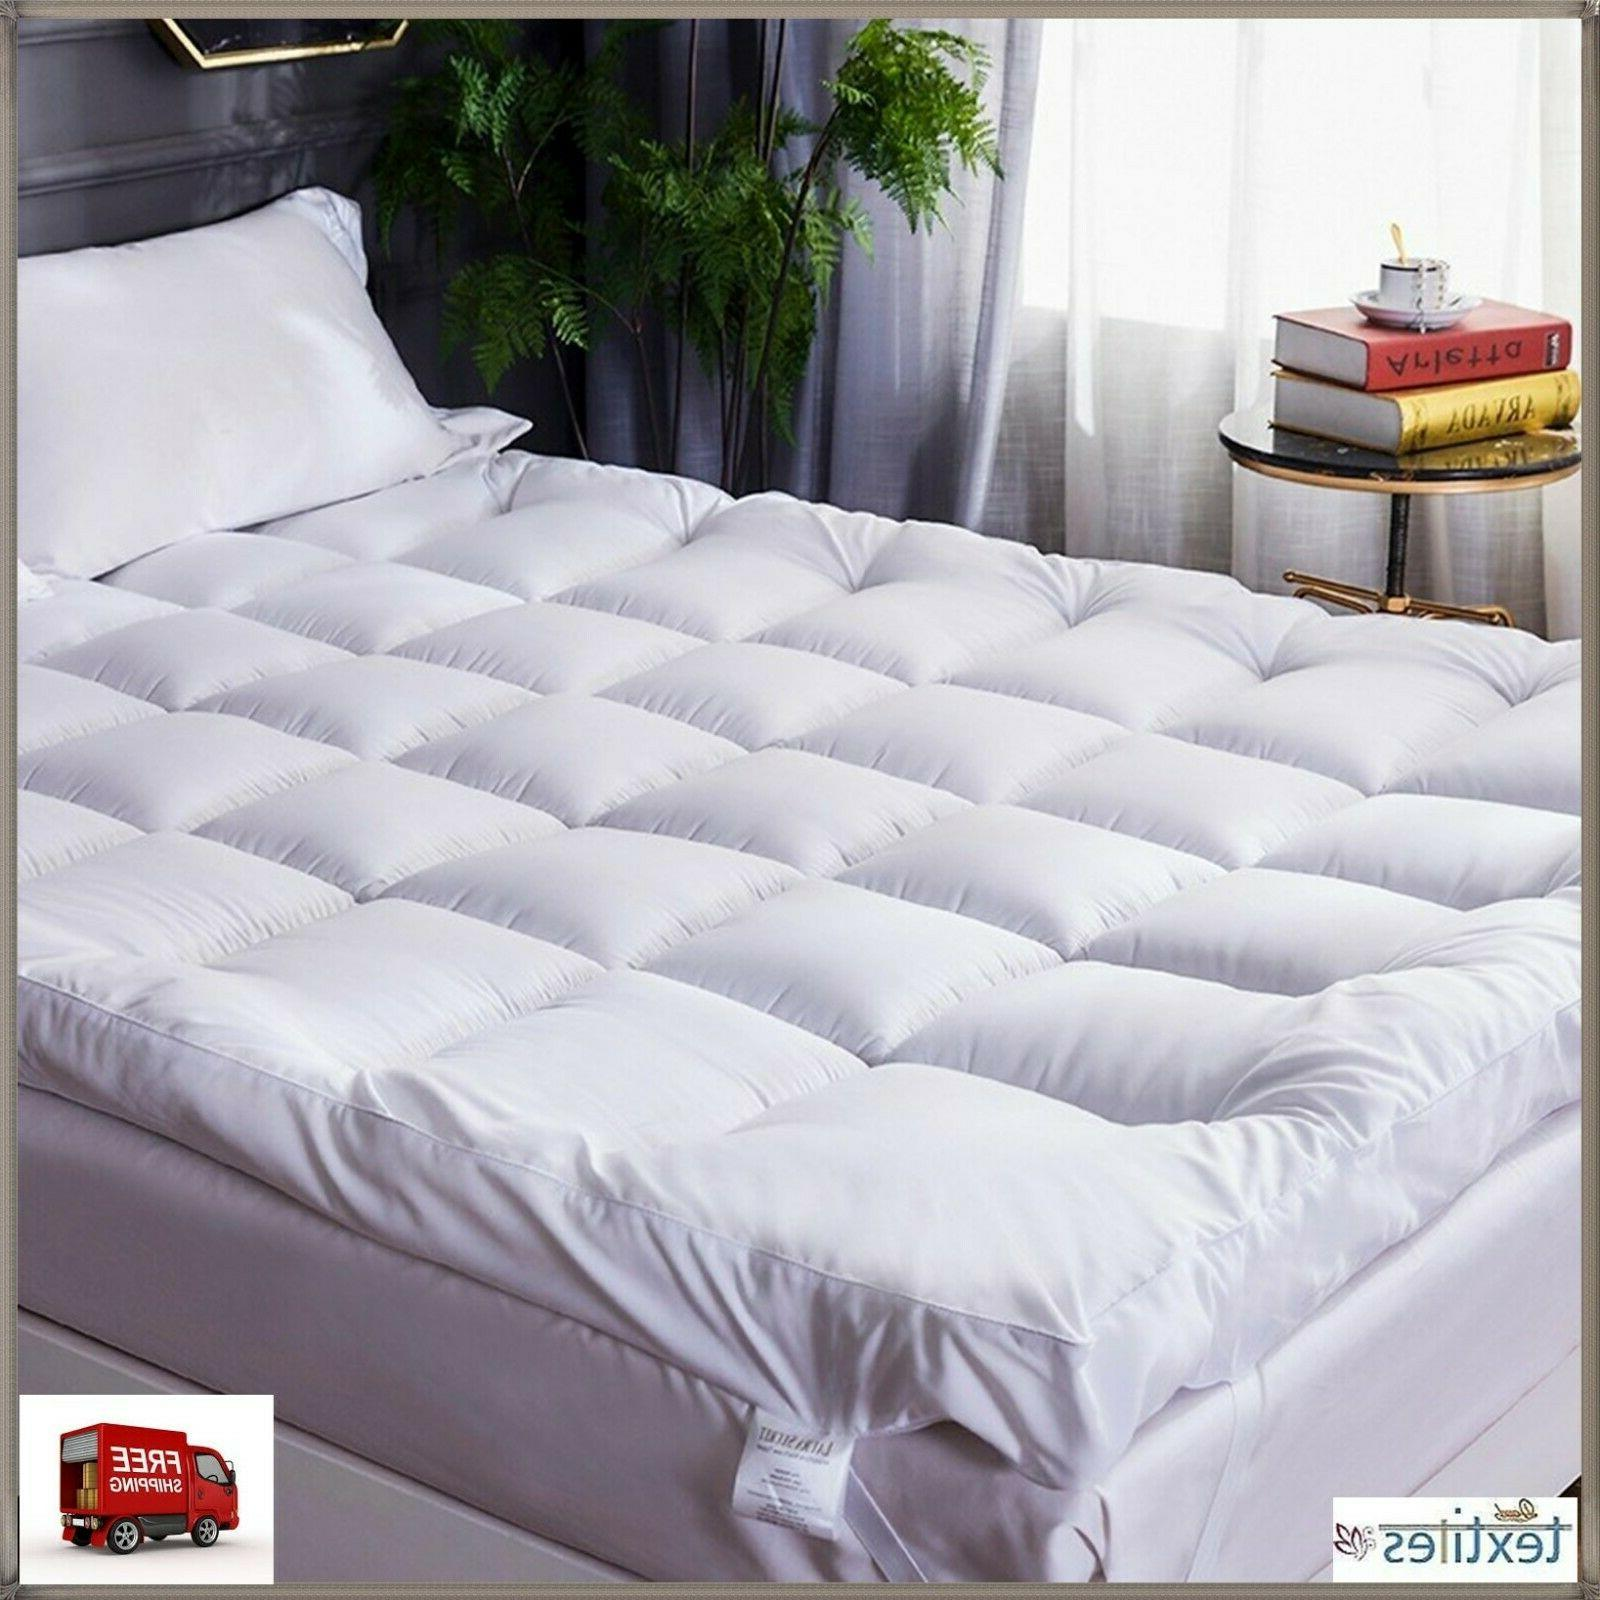 4'' SUPERSOFT THICK MICROFIBER MATTRESS TOPPER/MATRESS PROTE